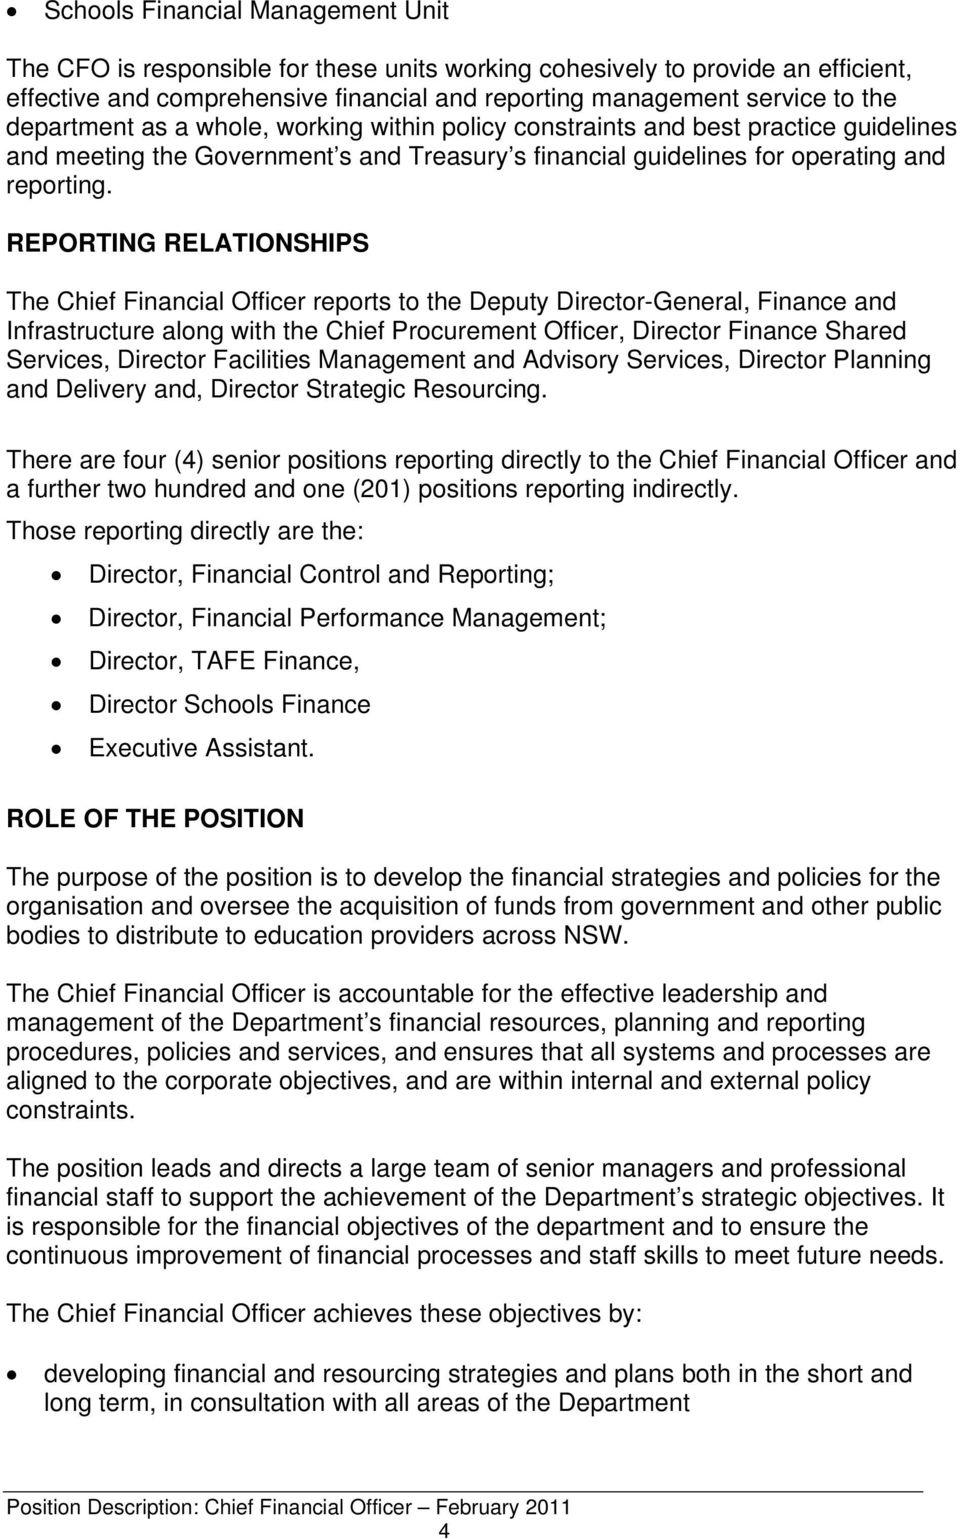 REPORTING RELATIONSHIPS The Chief Financial Officer reports to the Deputy Director-General, Finance and Infrastructure along with the Chief Procurement Officer, Director Finance Shared Services,